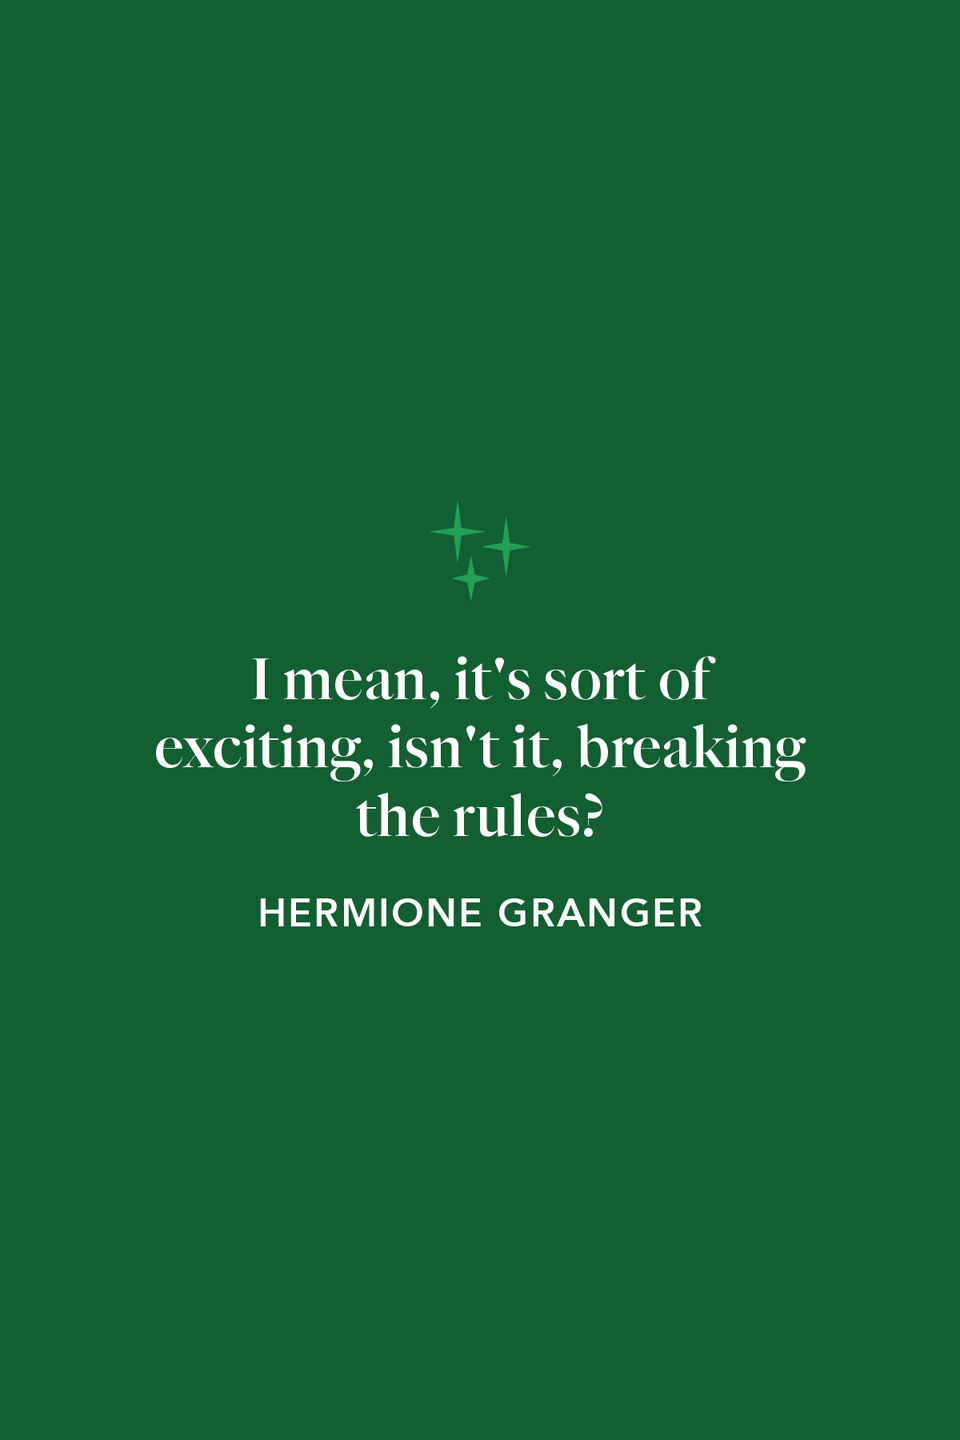 """<p>Emma Watson's Hermione says, """"I mean, it's sort of exciting, isn't it, breaking the rules?"""" in the <em>Harry Potter and the Order of the Phoenix </em>film, while hatching a plan with the gang in Dumbledore's Army.</p>"""